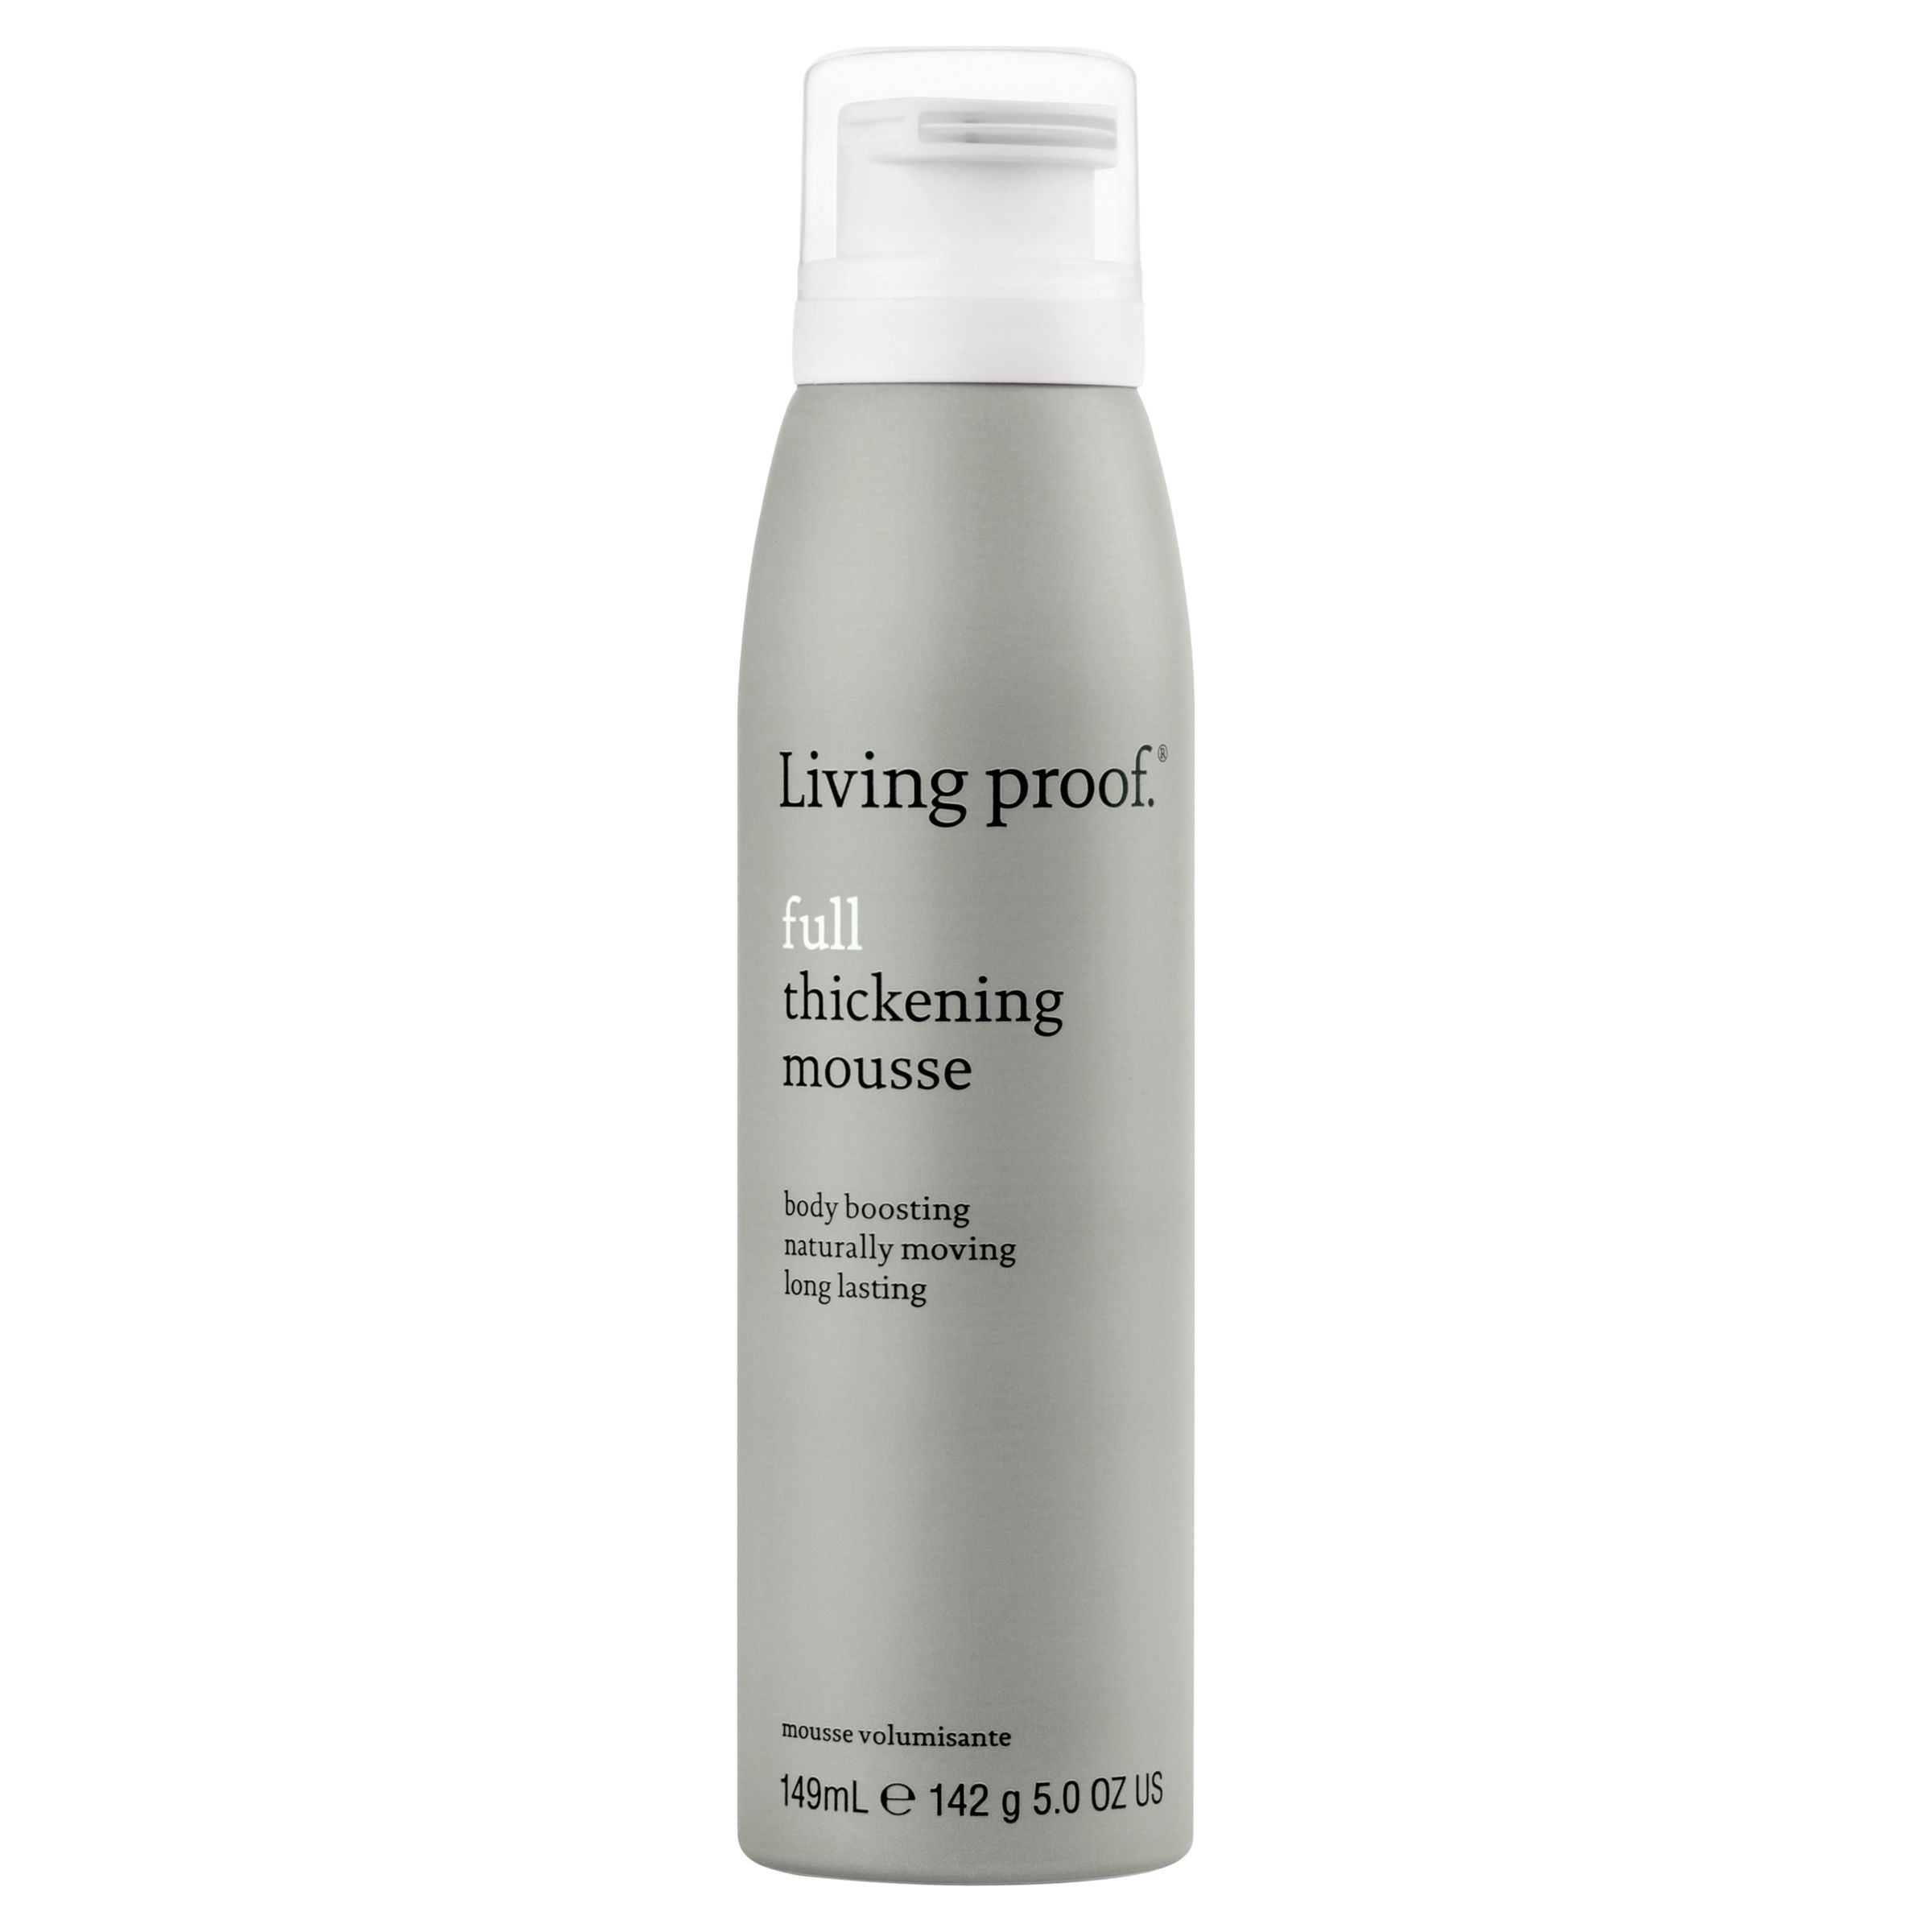 Living Proof Living Proof Full Thickening Mousse, 149ml